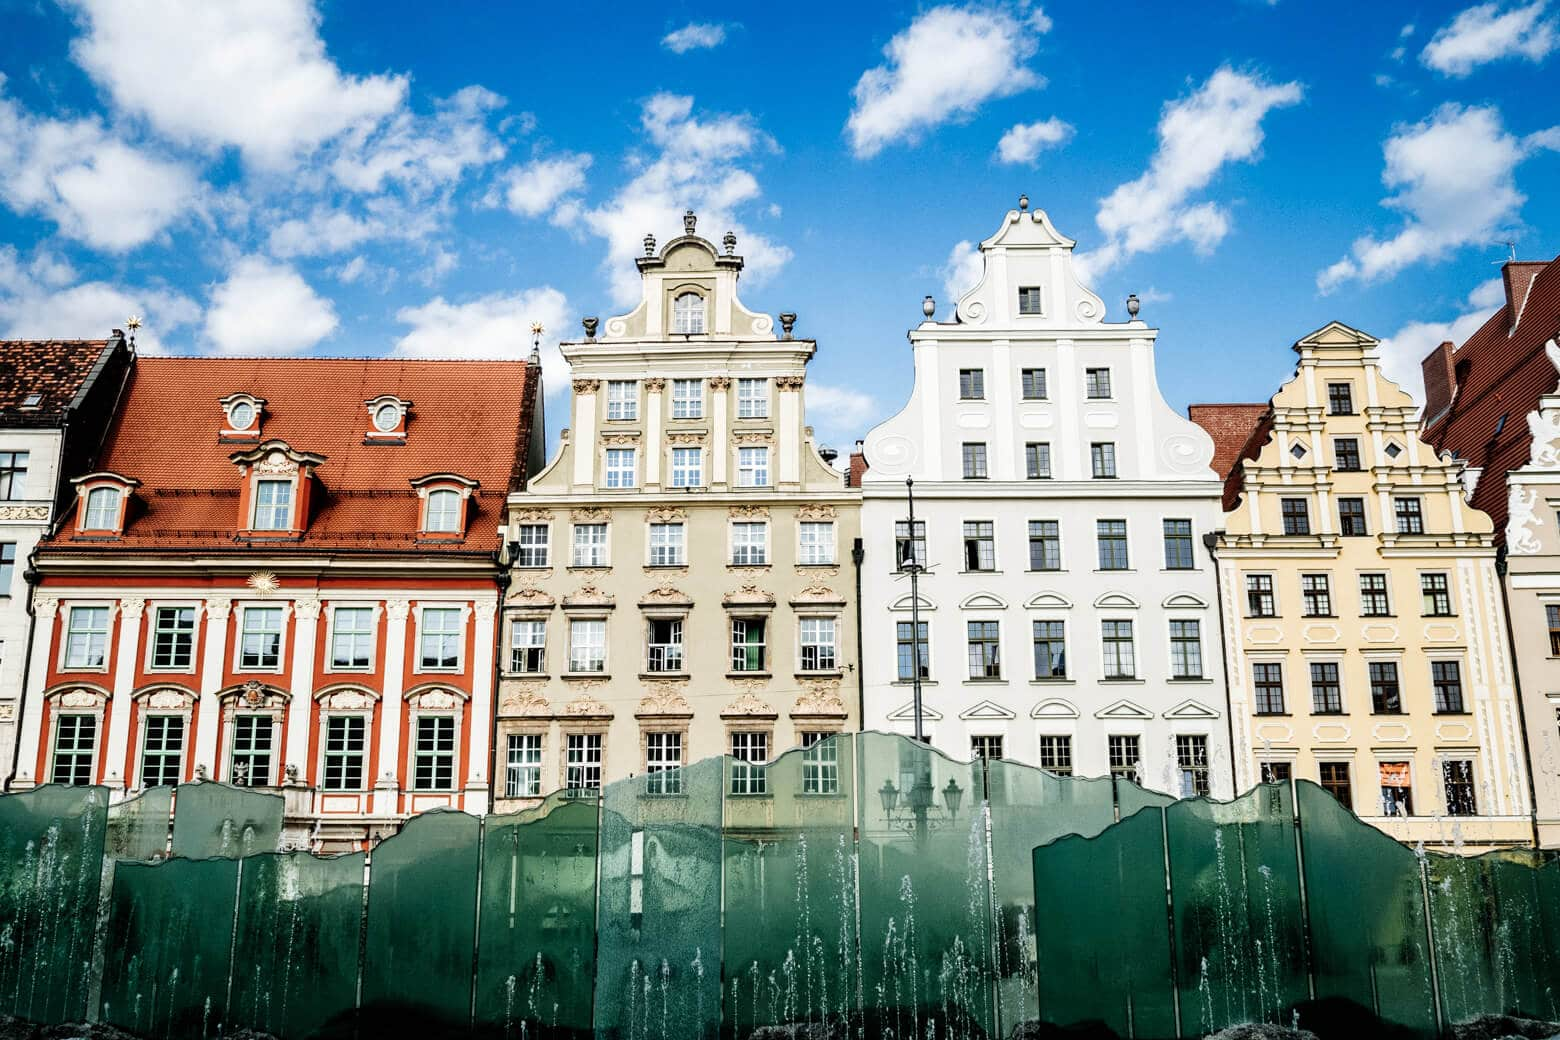 Colourful Buildings in Wroclaw's Main Square